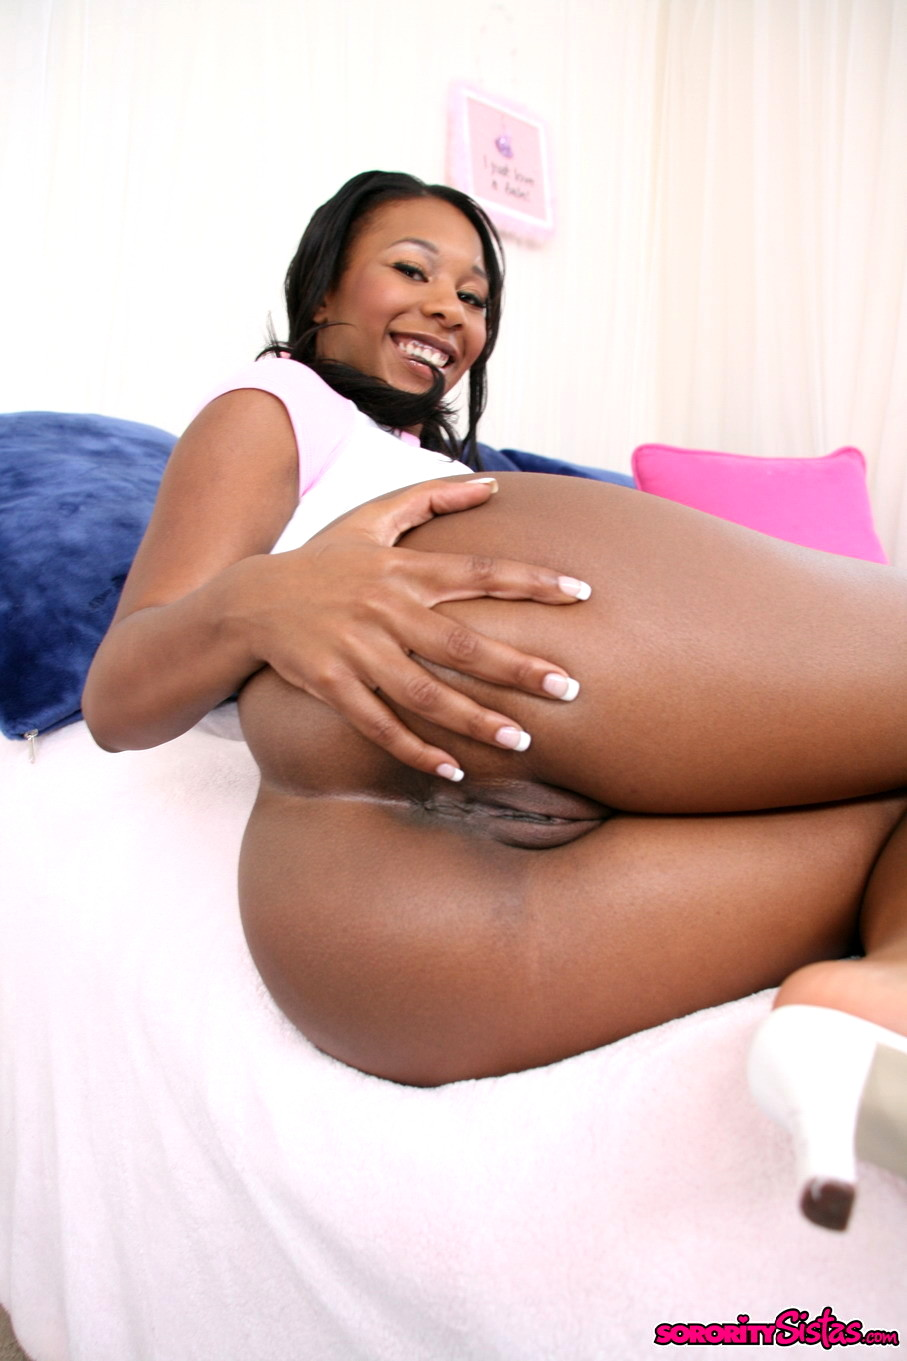 Sorority Sistas Sororitysistas Model Rare Chocolate Pussy Hotel Sex Hd Pics-8963